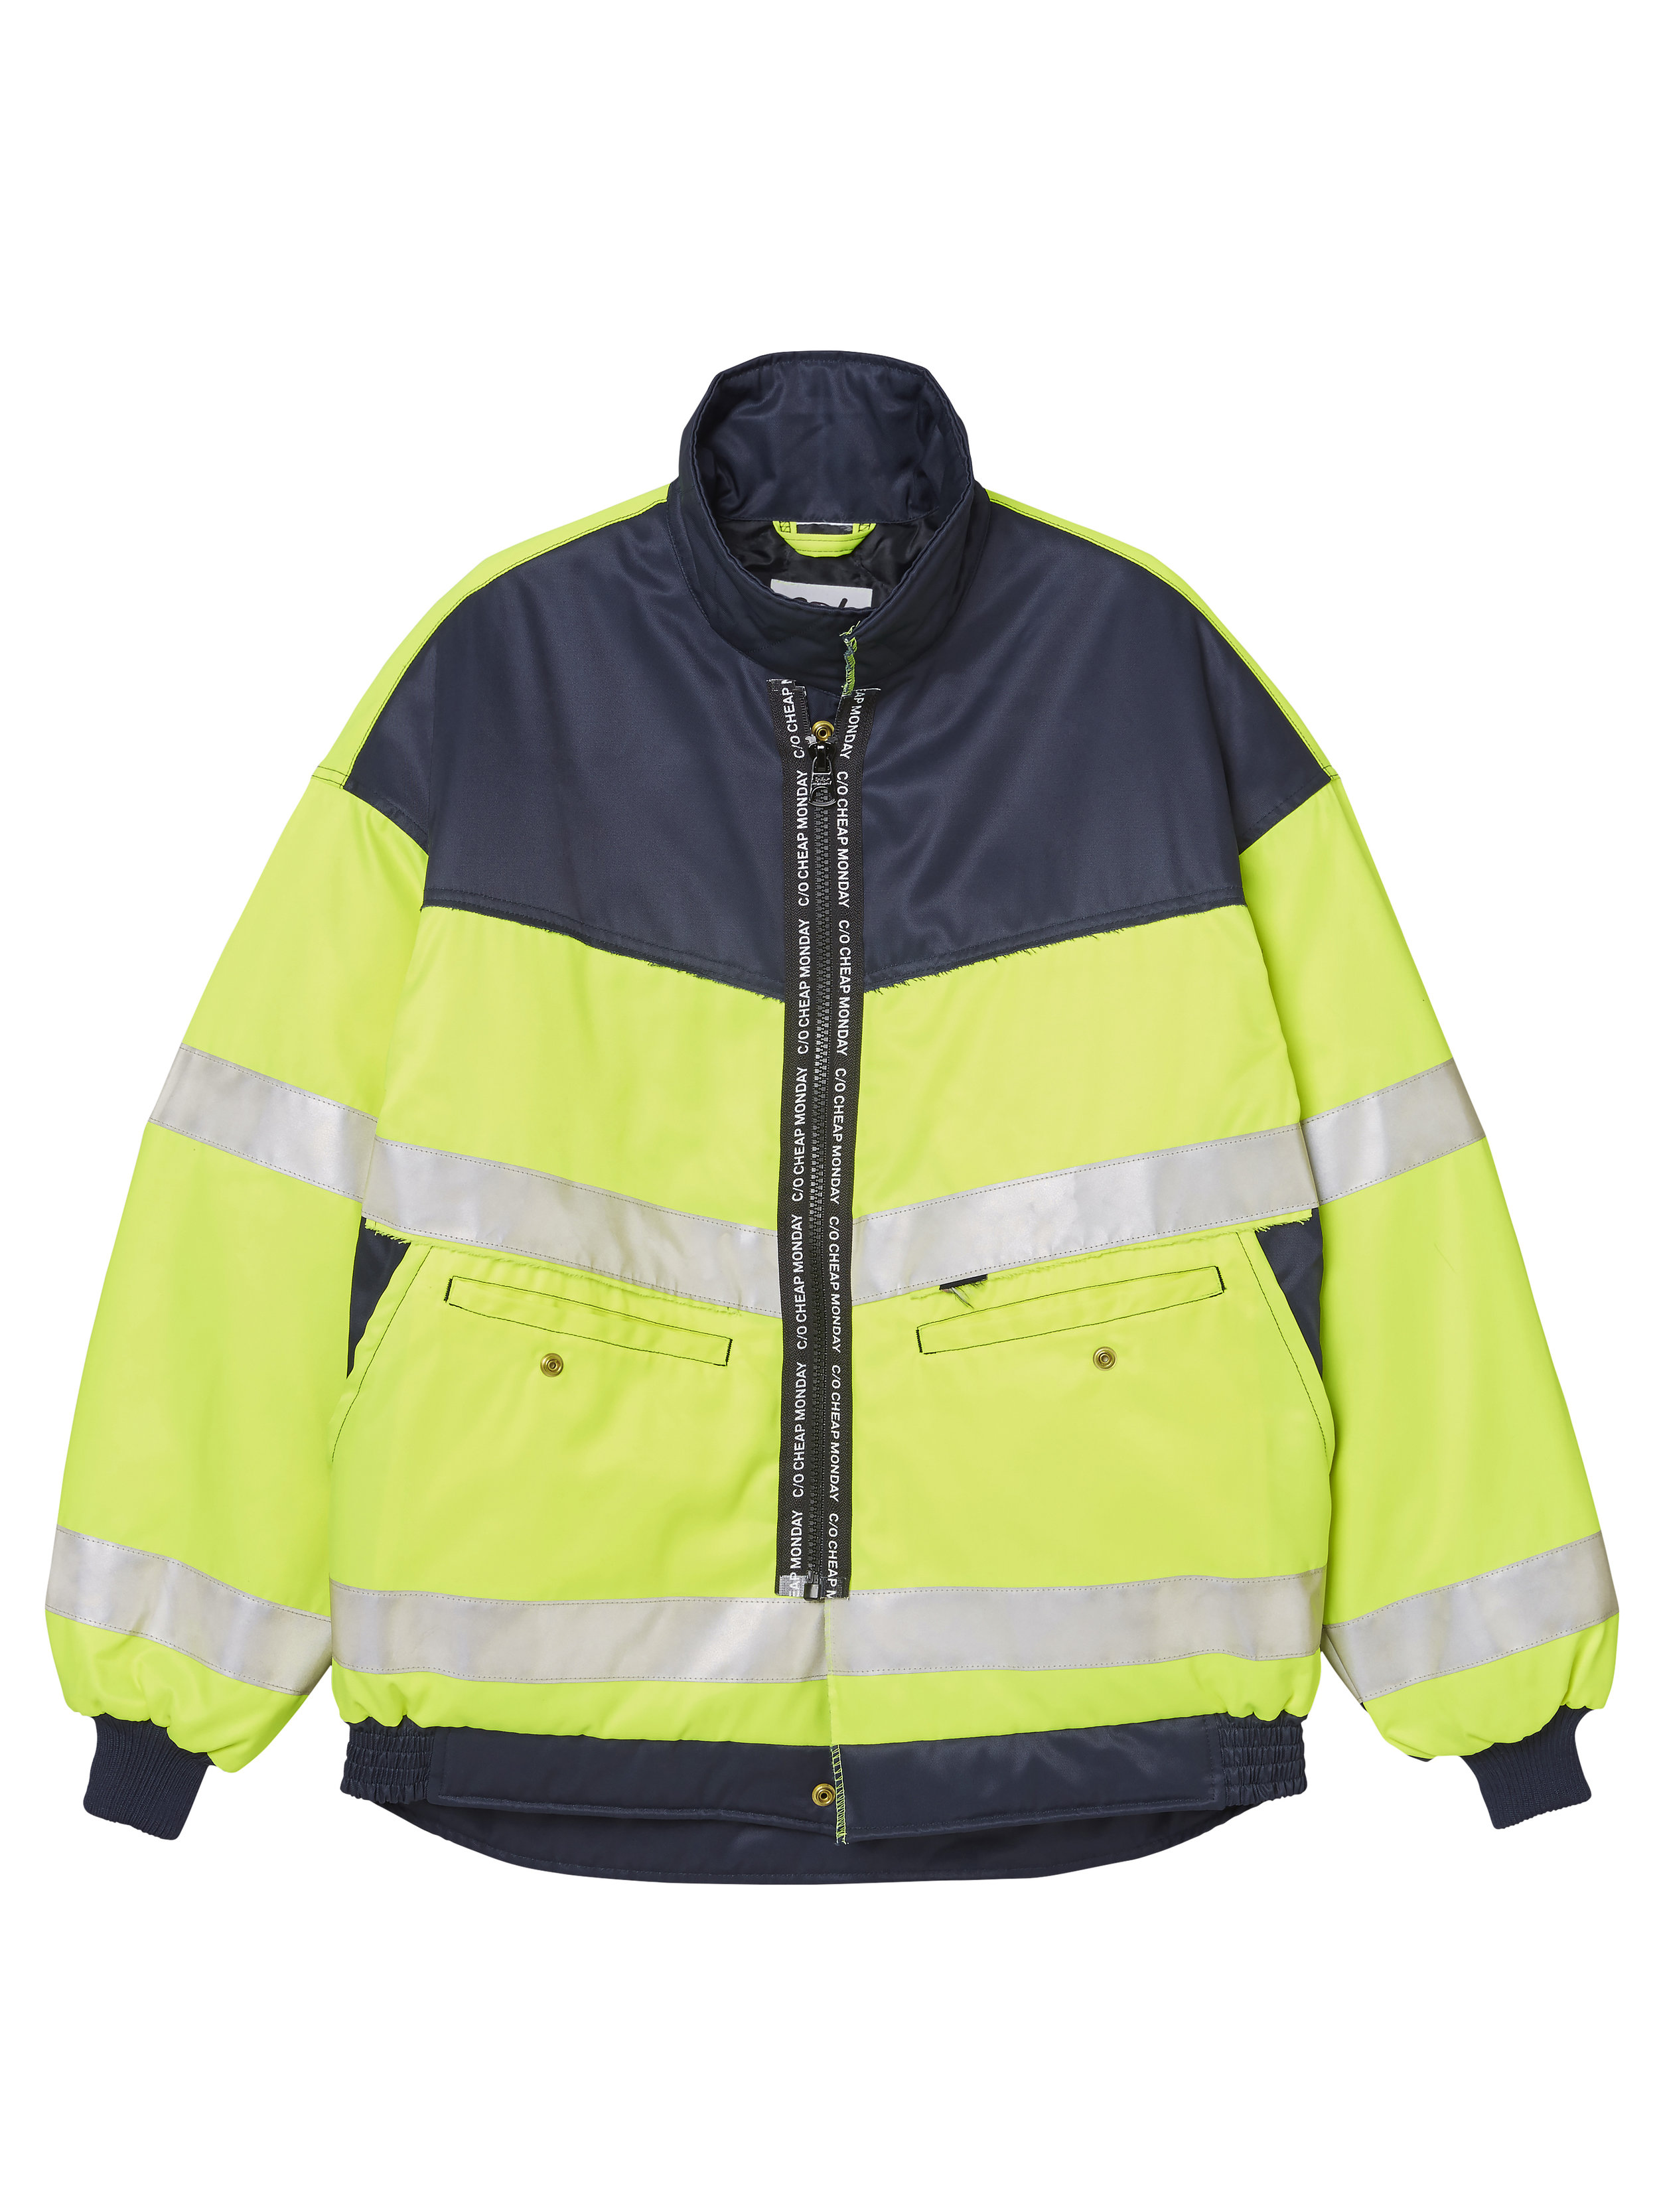 0643914_PROTECTION_JACKET_Neon_green3.jpg